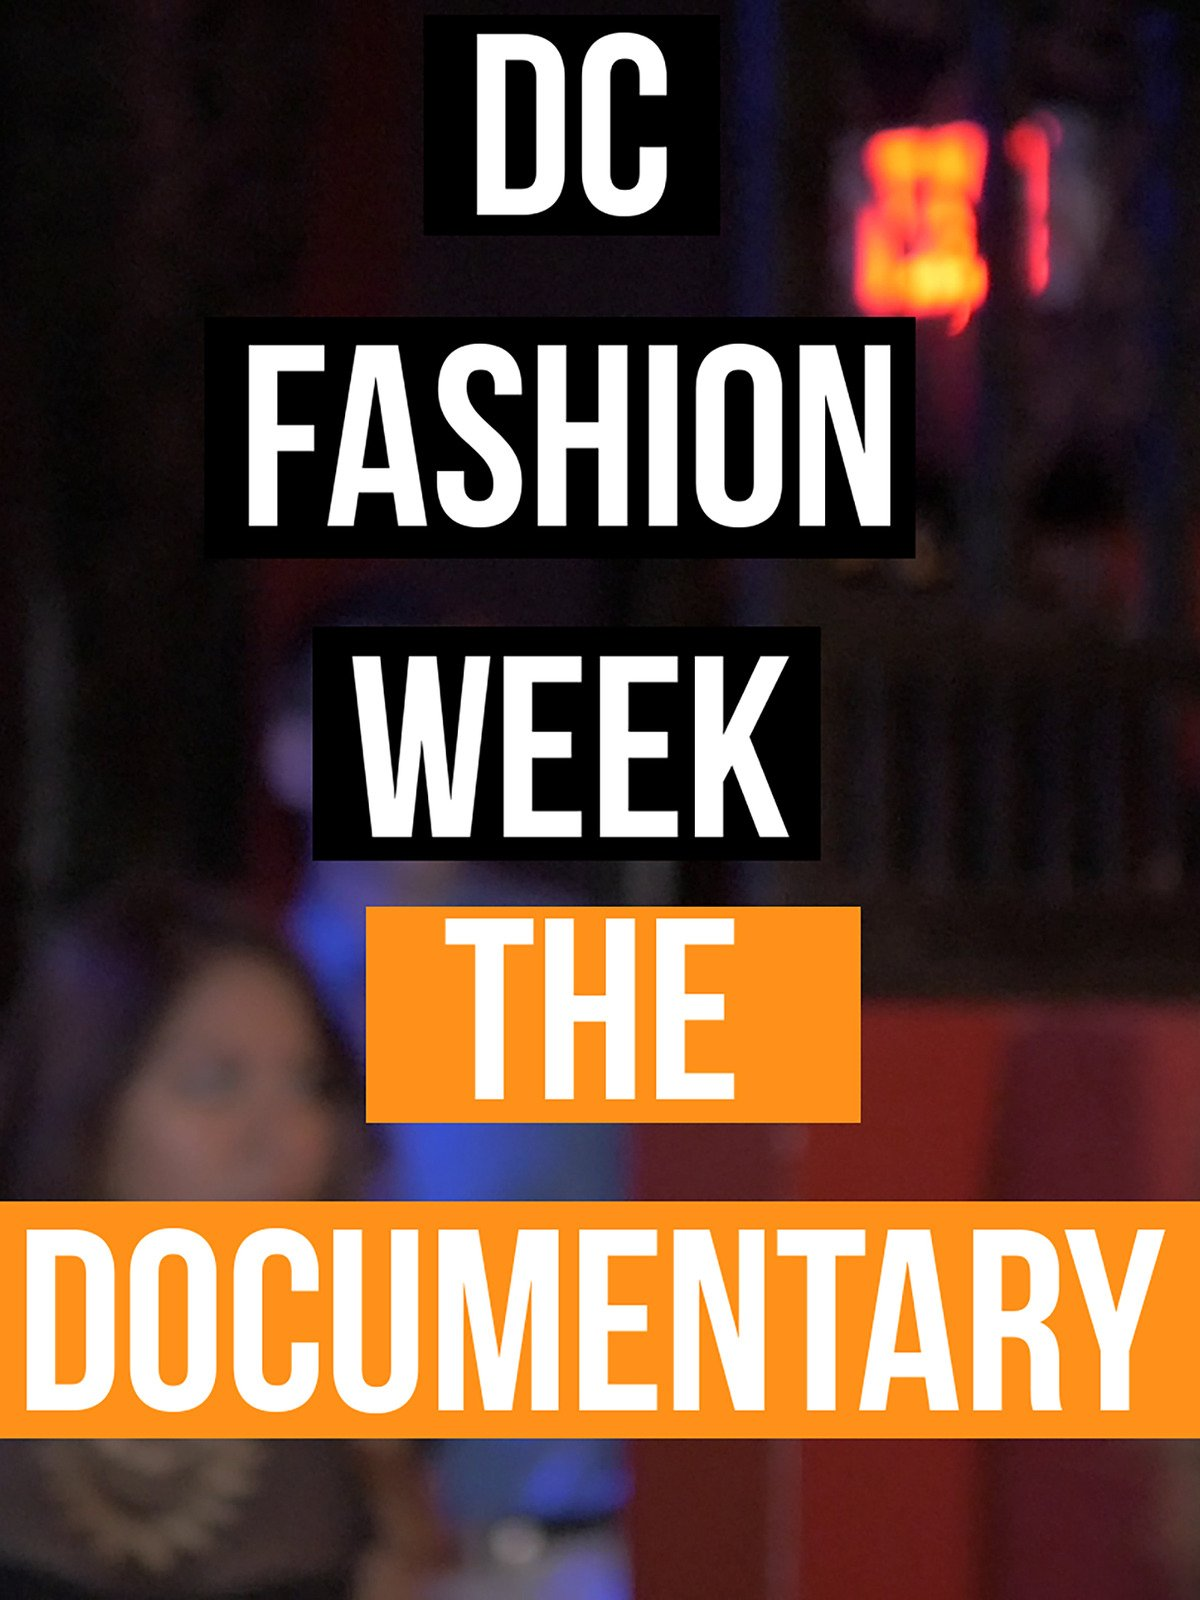 DC Fashion Week: The Documentary